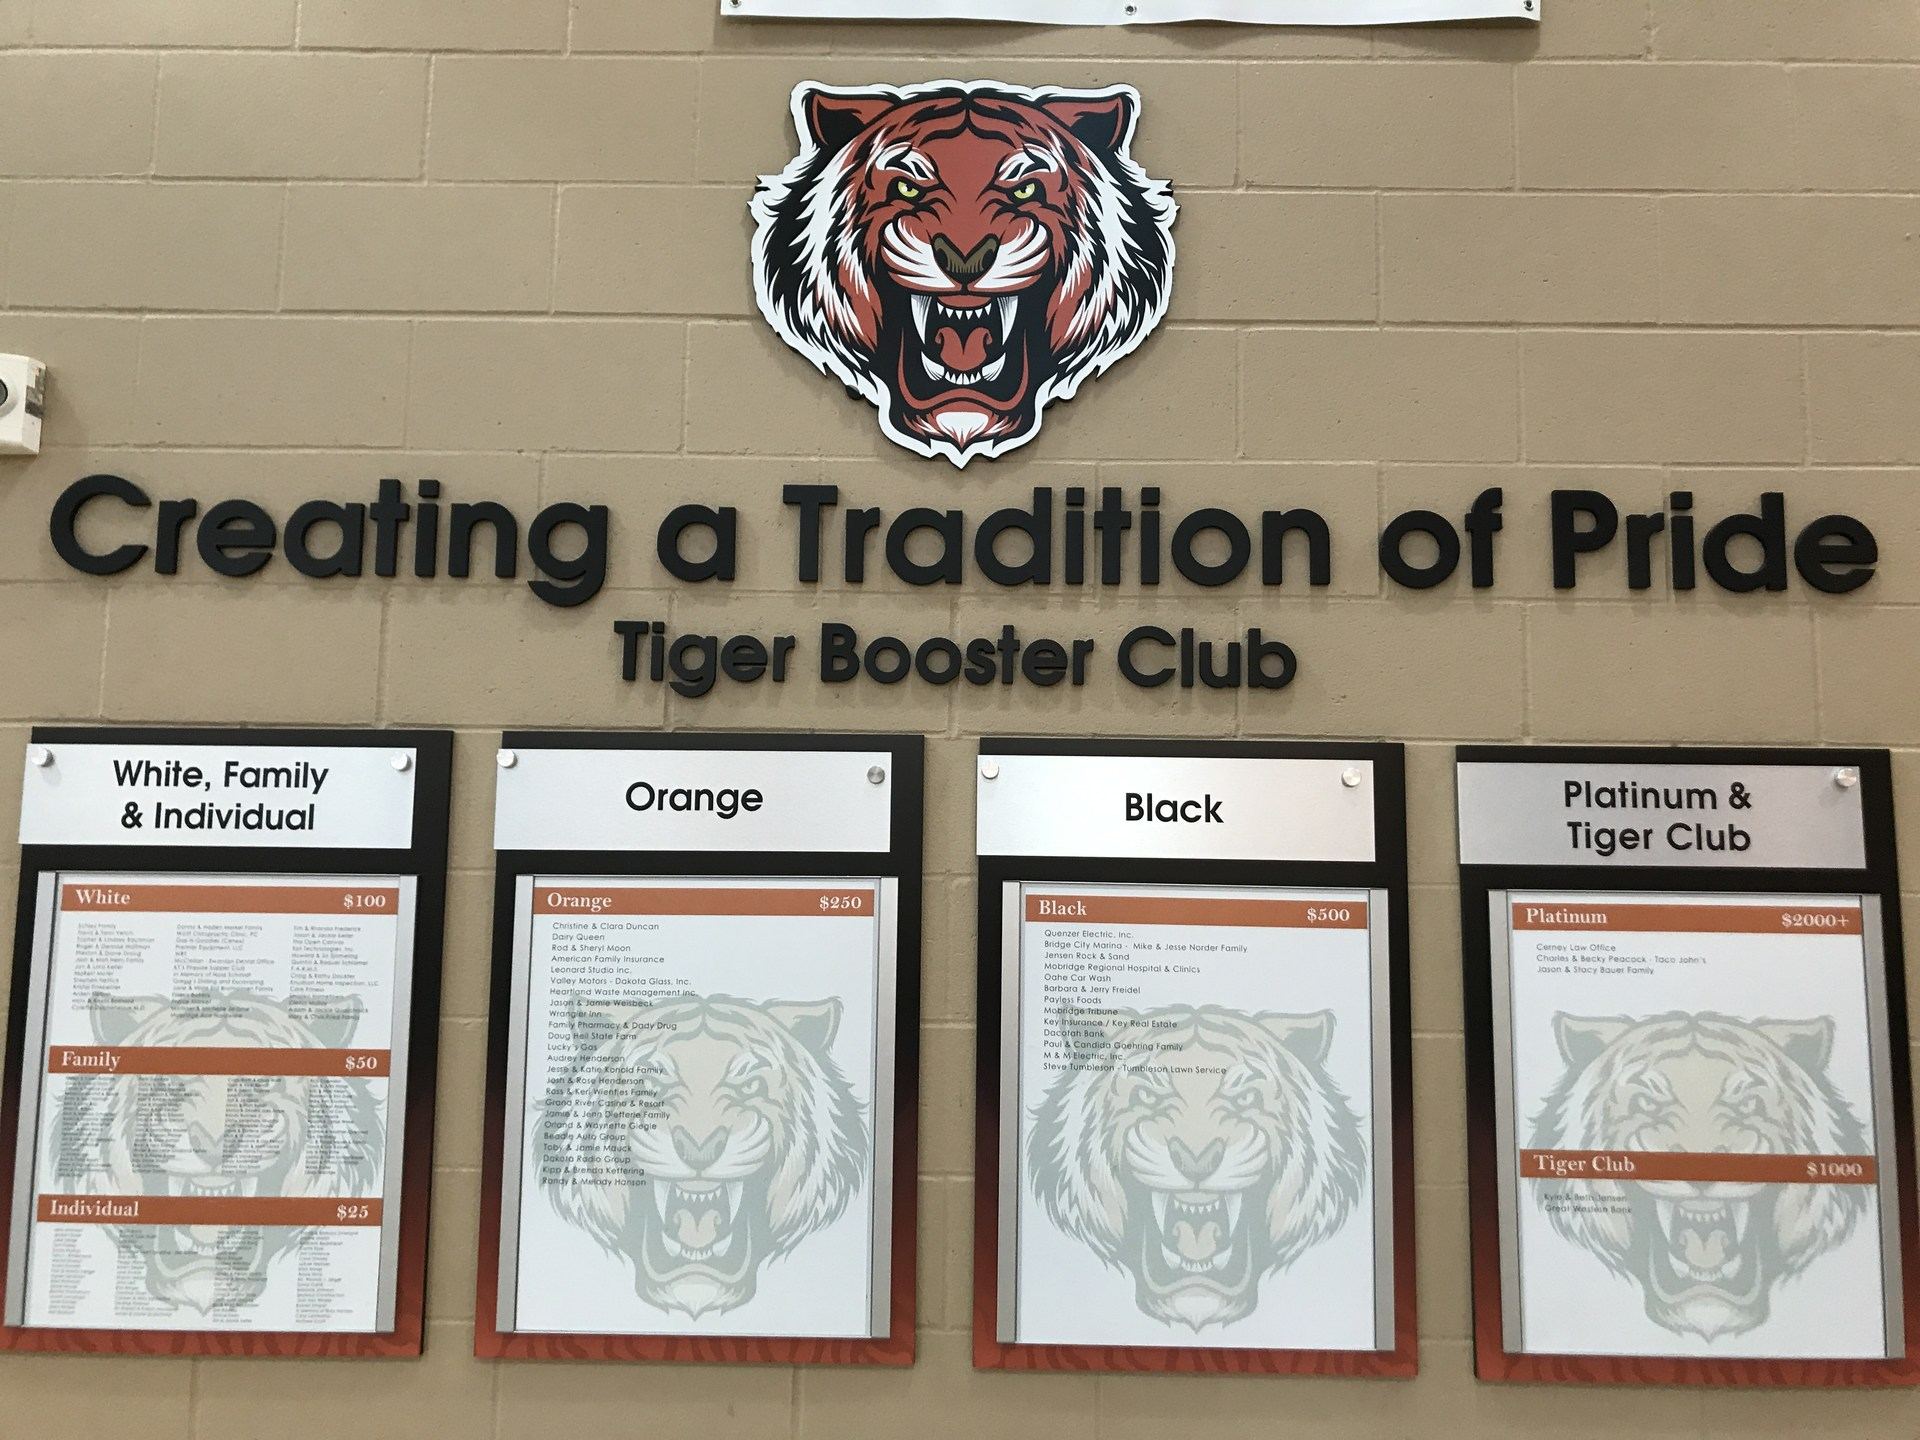 Tiger Booster Club